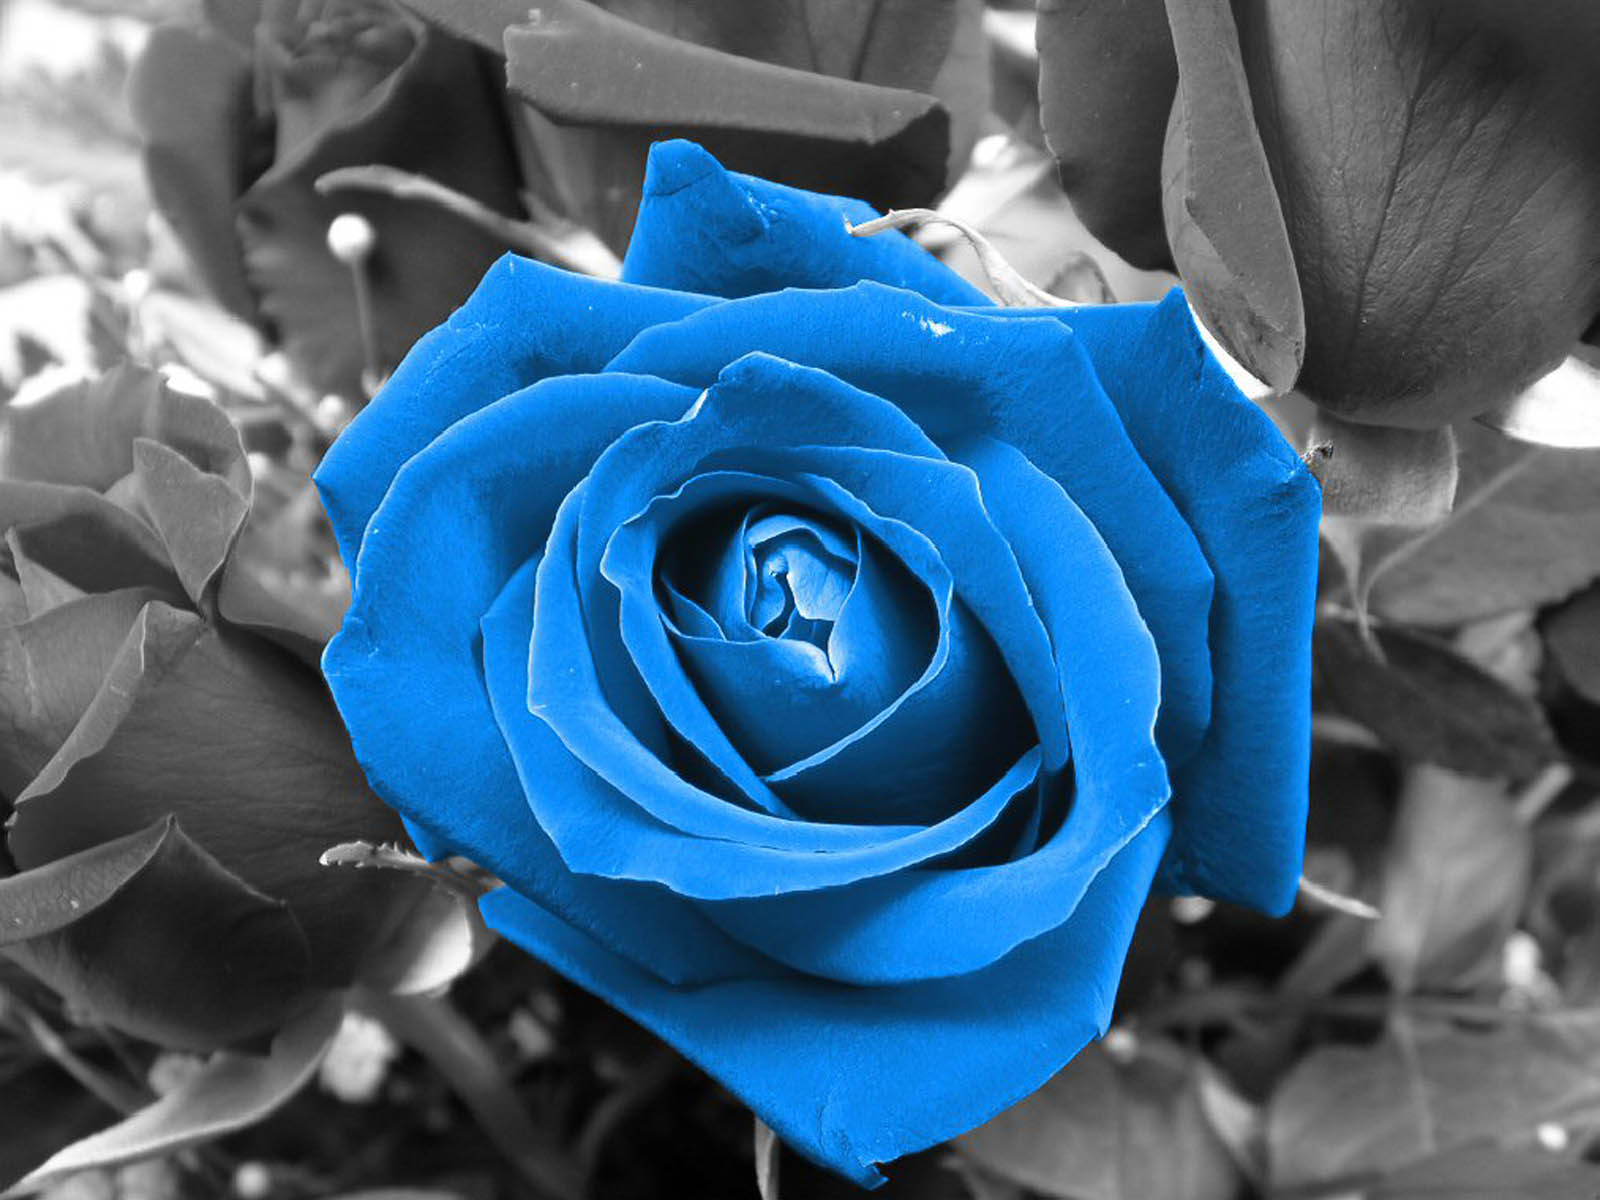 the blue rose wallpapers blue rose desktop wallpapers blue rose ...